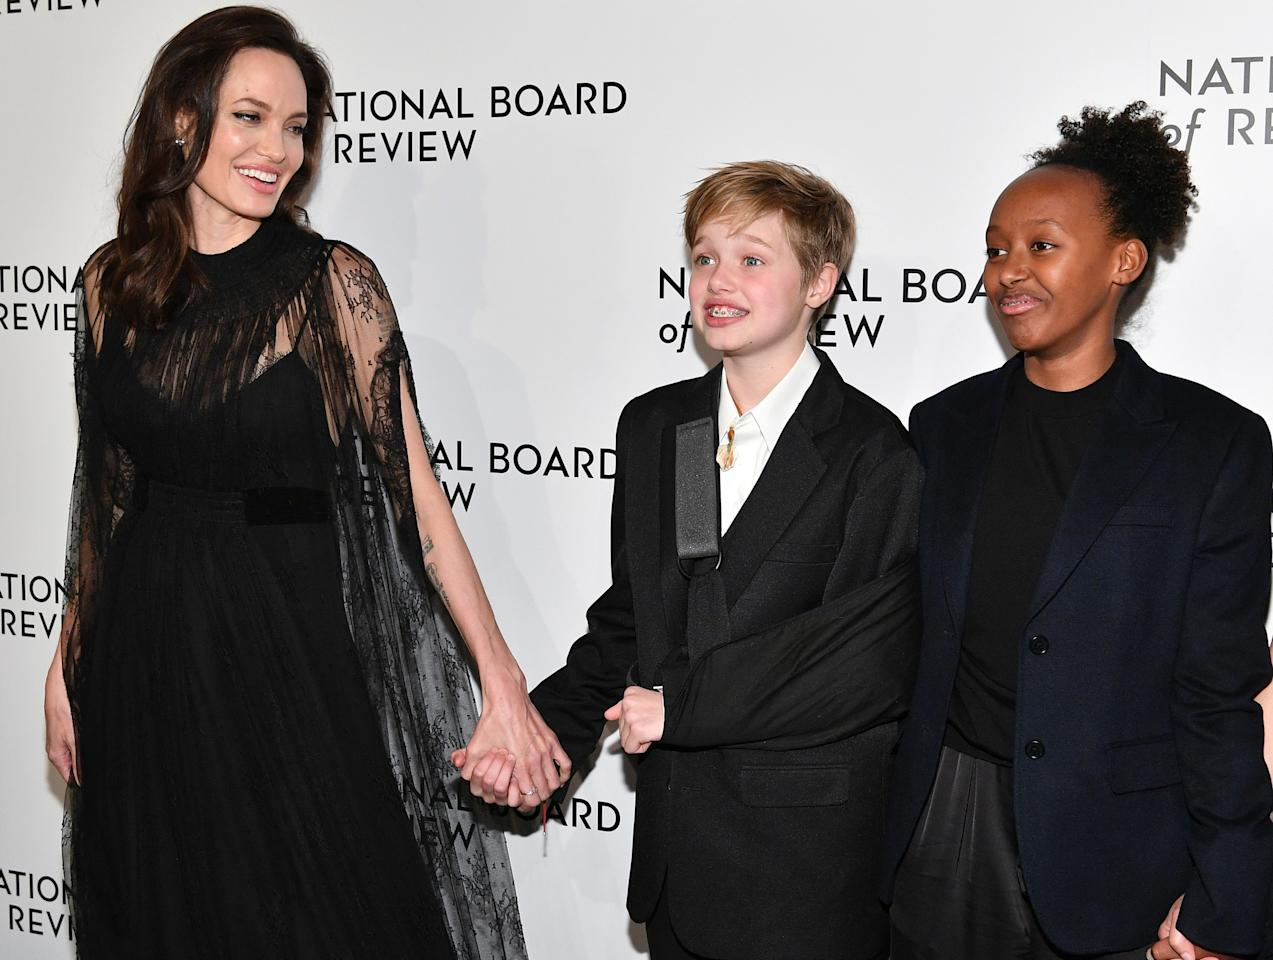 "<p>Angelina also brought Shiloh and Zahara to the National Board of Review Awards Gala on Jan. 9, where she accepted the Freedom of Expression Award for her film <em>First They Killed My Father. </em>Shiloh sported a sling after her <a rel=""nofollow"" href=""https://www.yahoo.com/lifestyle/angelina-jolie-apos-daughter-shiloh-134711903.html"">recent snowboarding accident</a>. (Photo: Dia Dipasupil/FilmMagic) </p>"